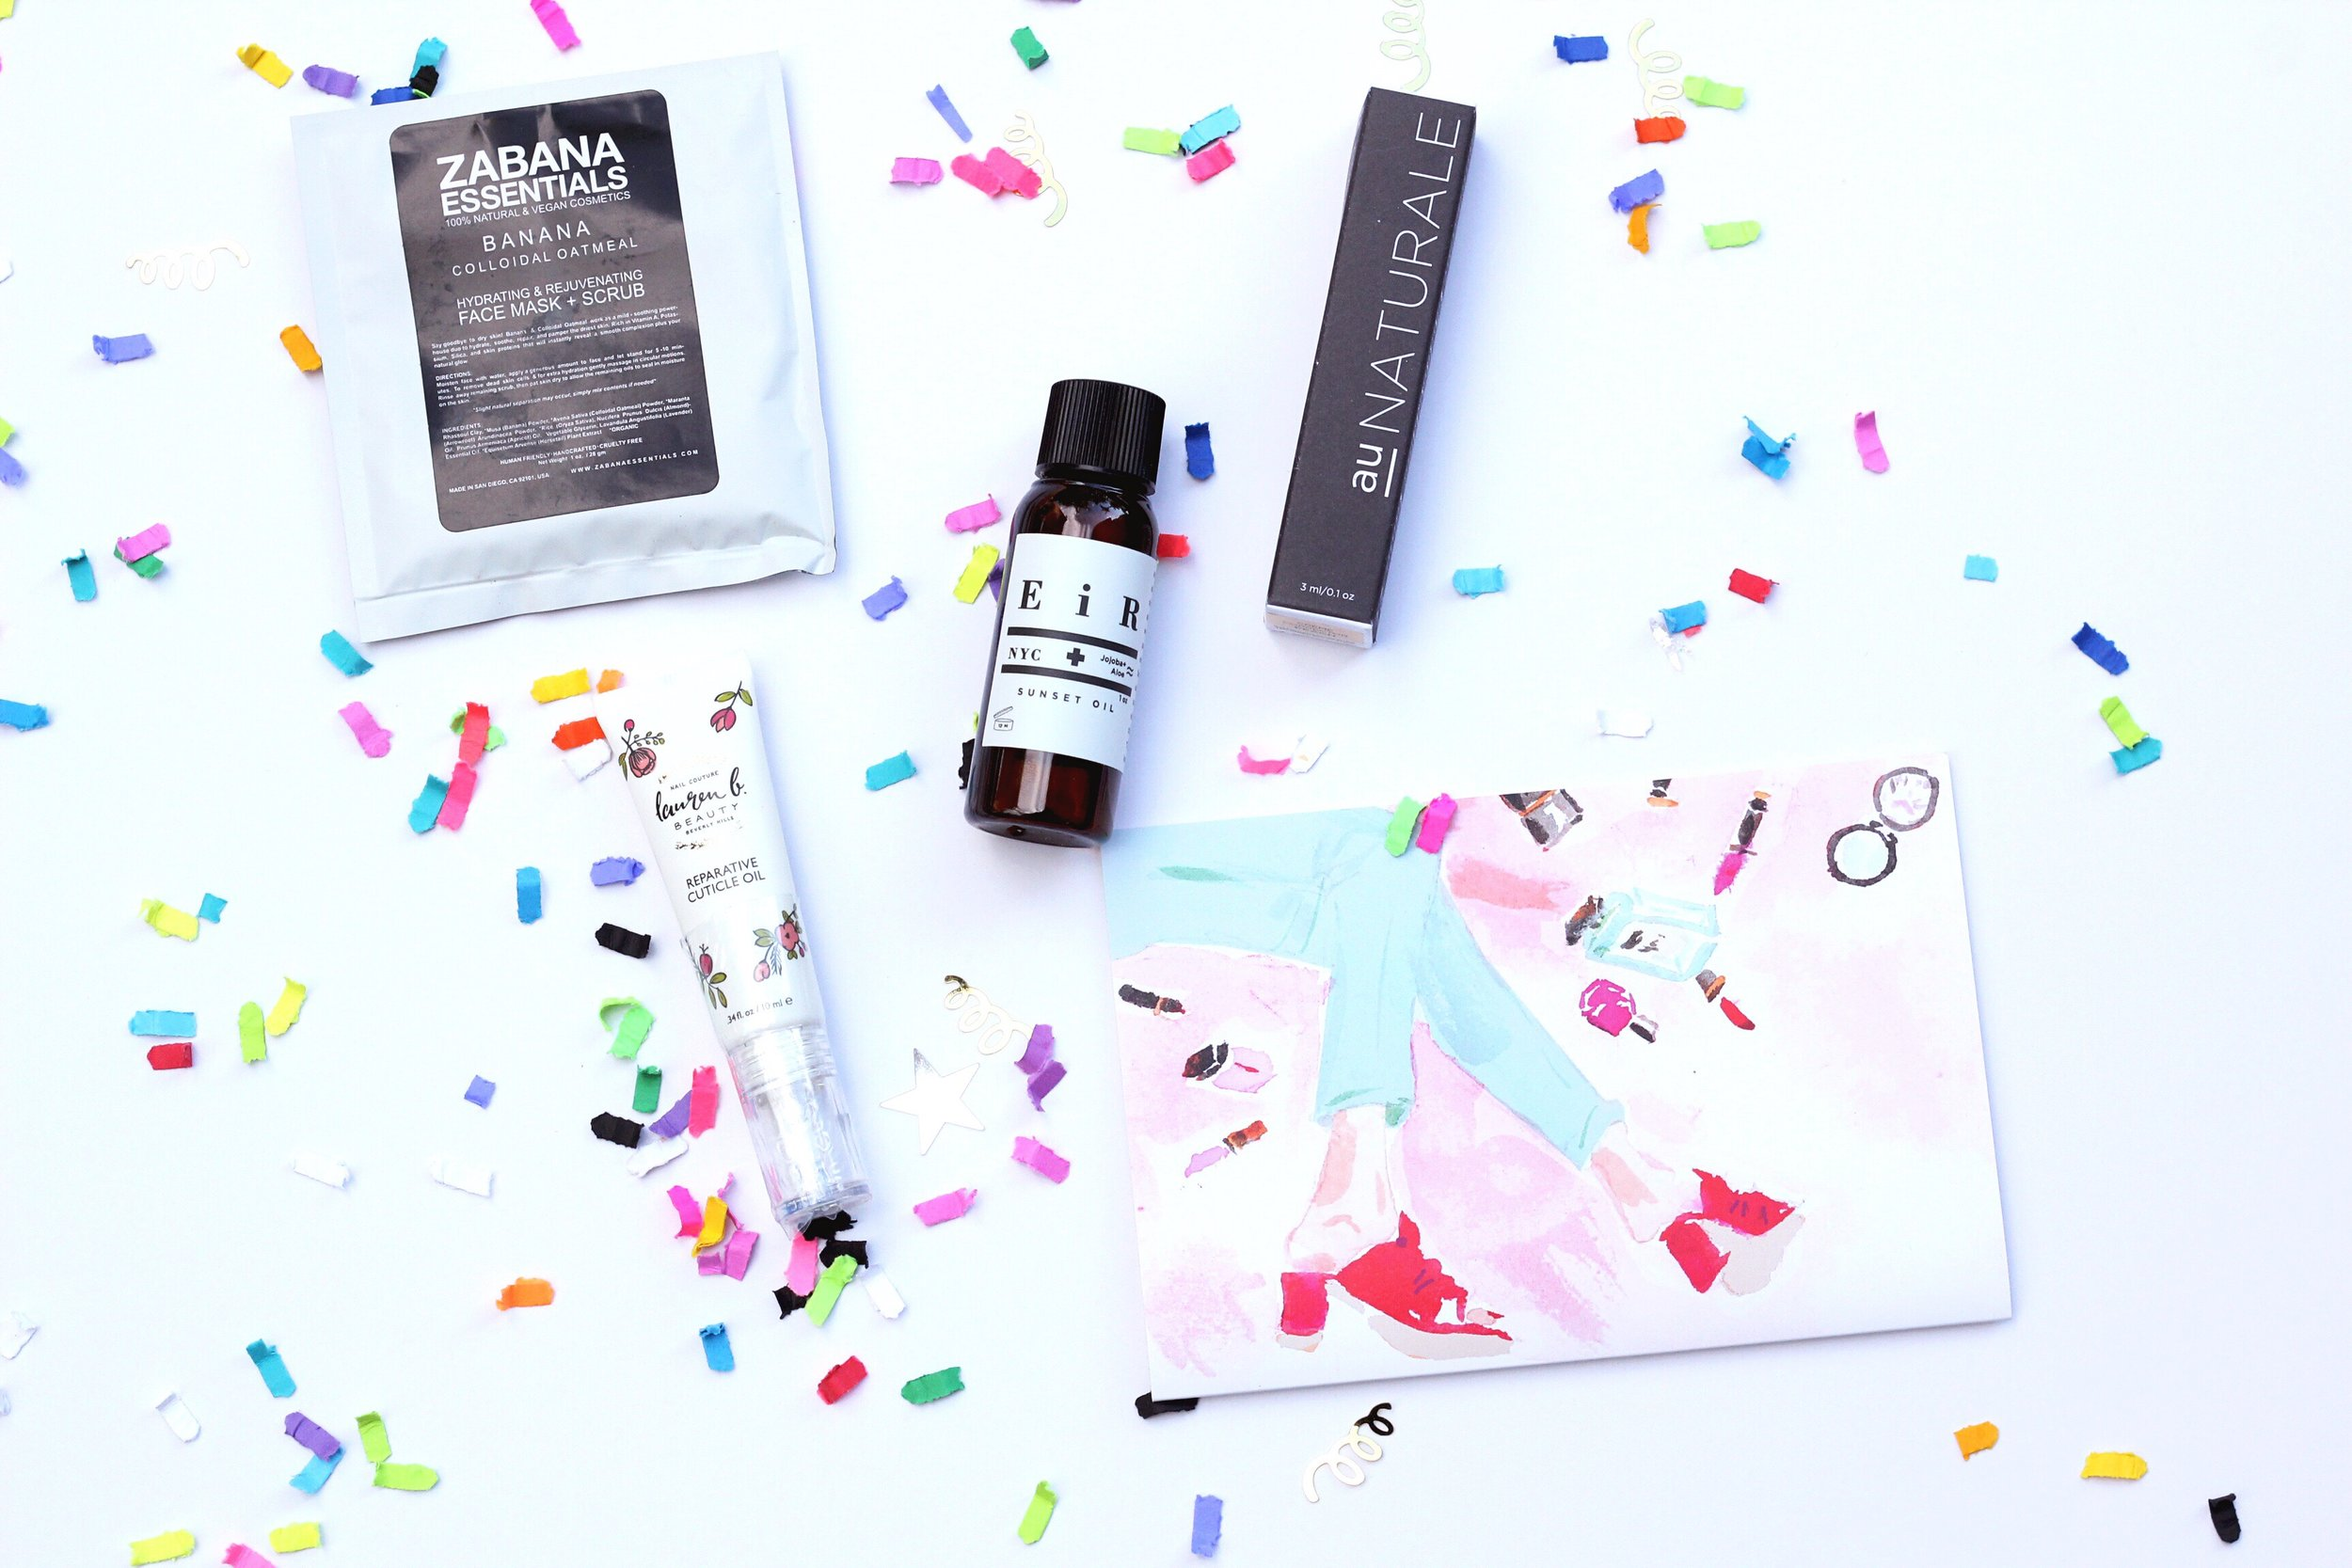 The cruelty free and non toxic beauty one stop shop - Petit Vour - has released their May Beauty Box and it's a great one!